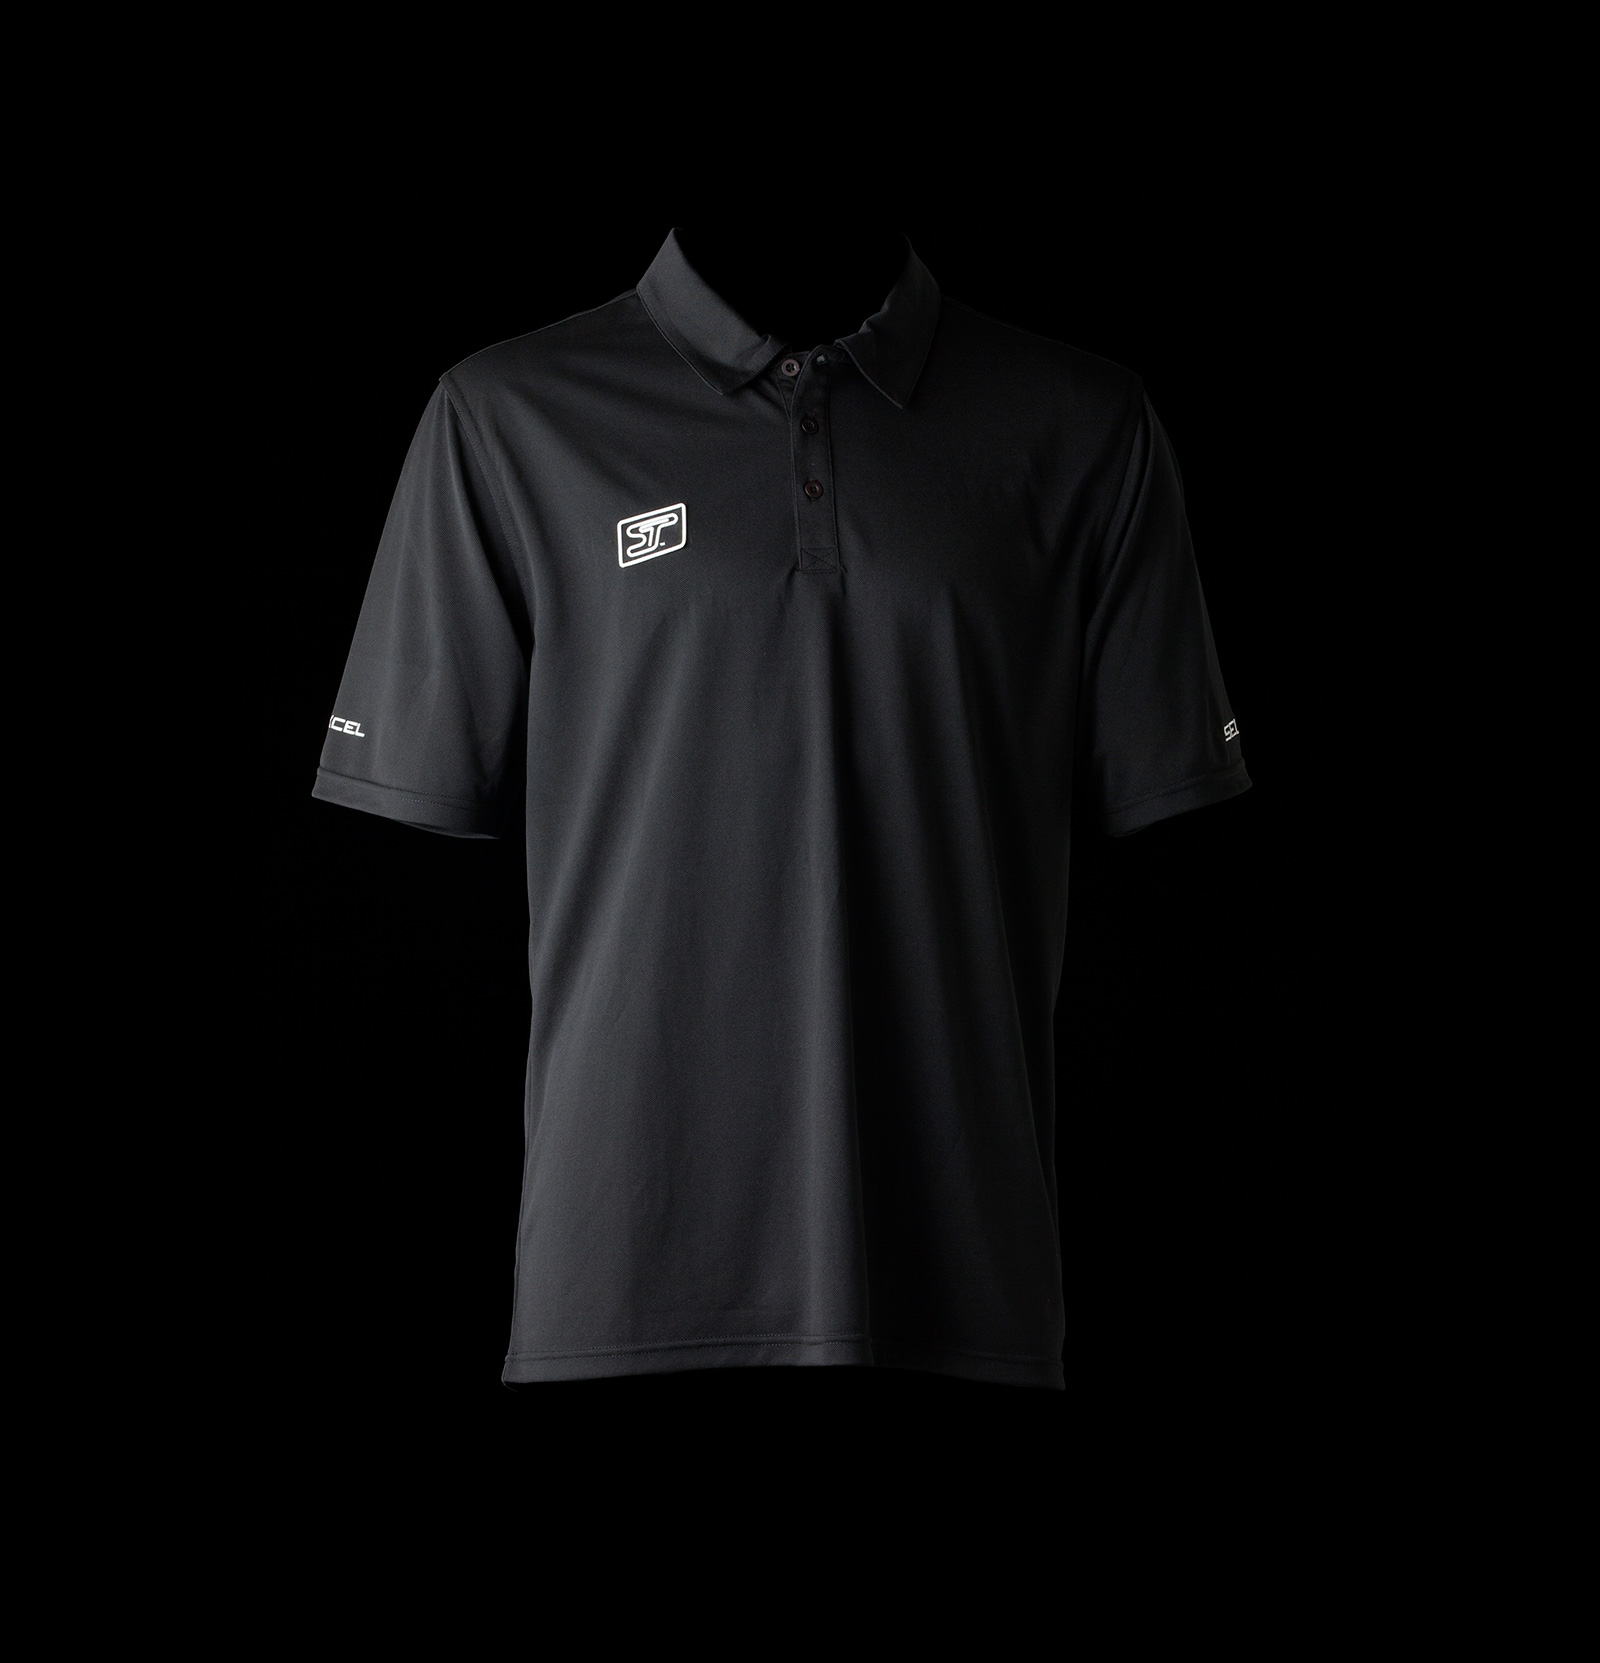 Excel-Polo-Shirt-Promo-72